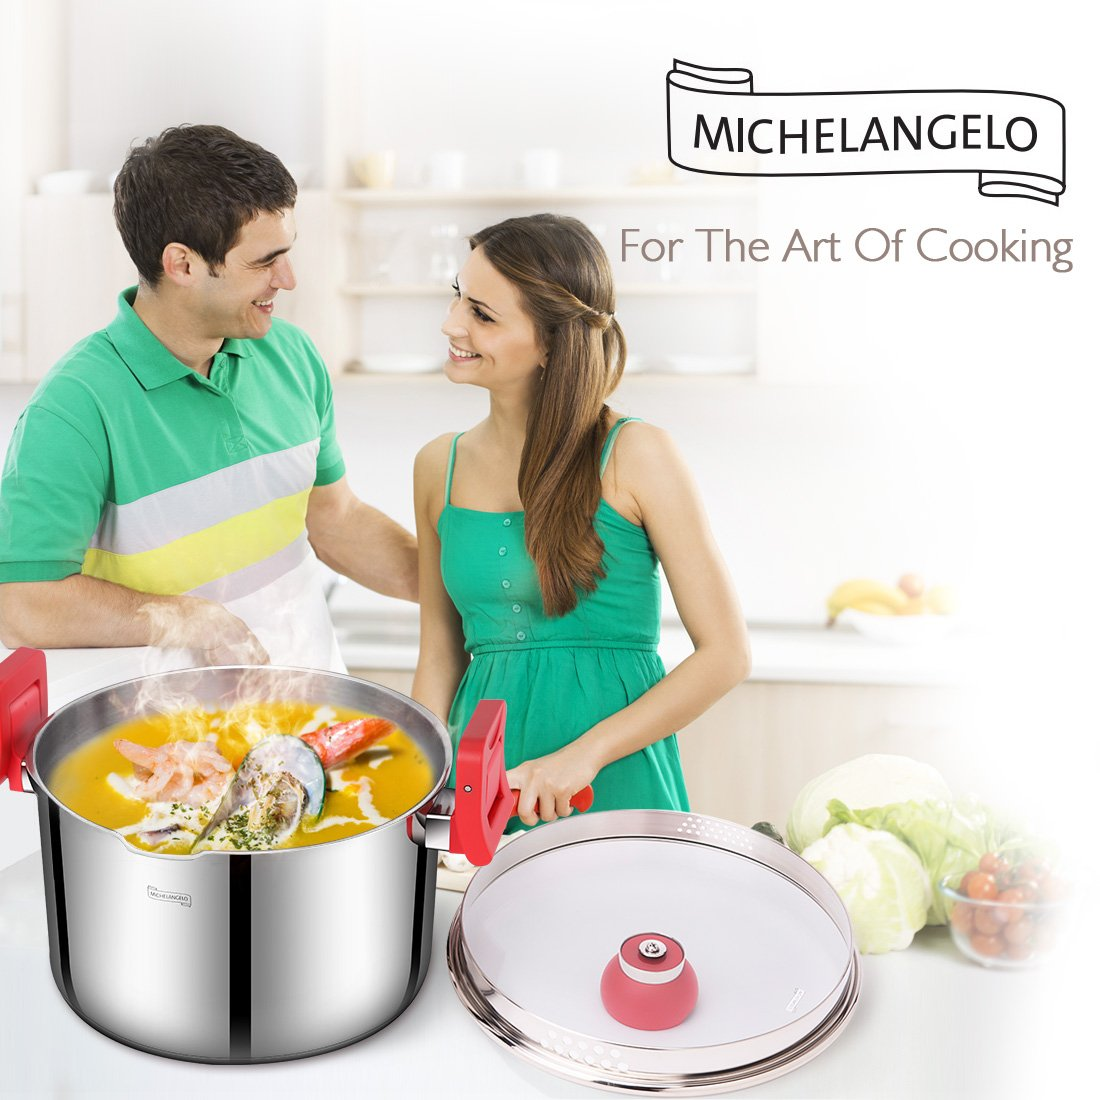 MICHELANGELO 5 Quart Pasta Pot Induction Ready, Stainless Steel Pasta Pot With Strainer Lid, Stainless Steel Dutch Oven Pot, 5 Quart Soup Pots with Lids by MICHELANGELO (Image #4)